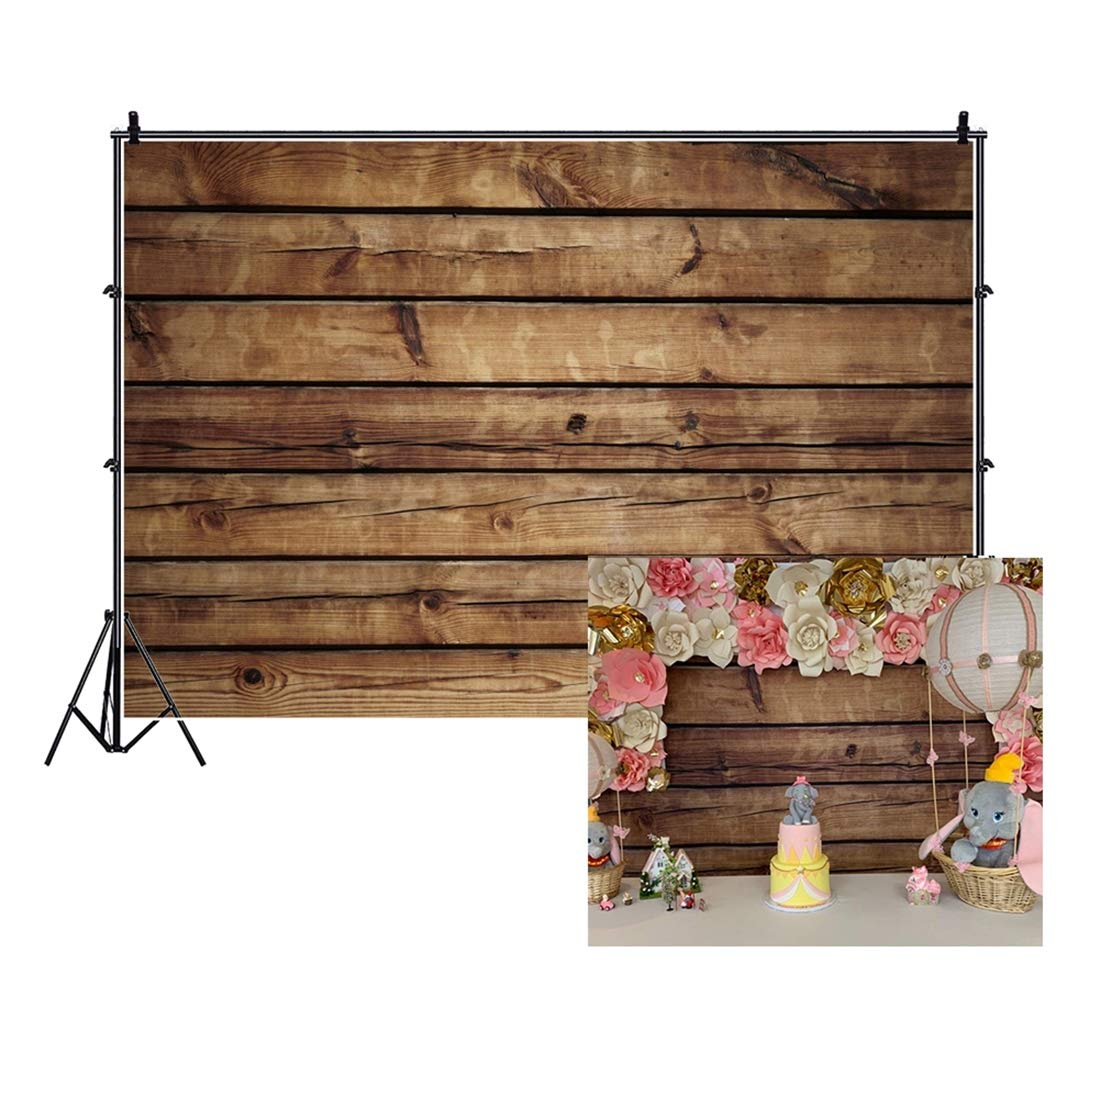 LFEEY 10x8ft Wood Backdrops for Photography Grunge Wood Vintage Worn Wooden Boards Background Seamless Backdrop Gray Wood Photo Backgrounds Wood Wall Wrinkle Free Photography Backdrops Photo Studio by LFEEY